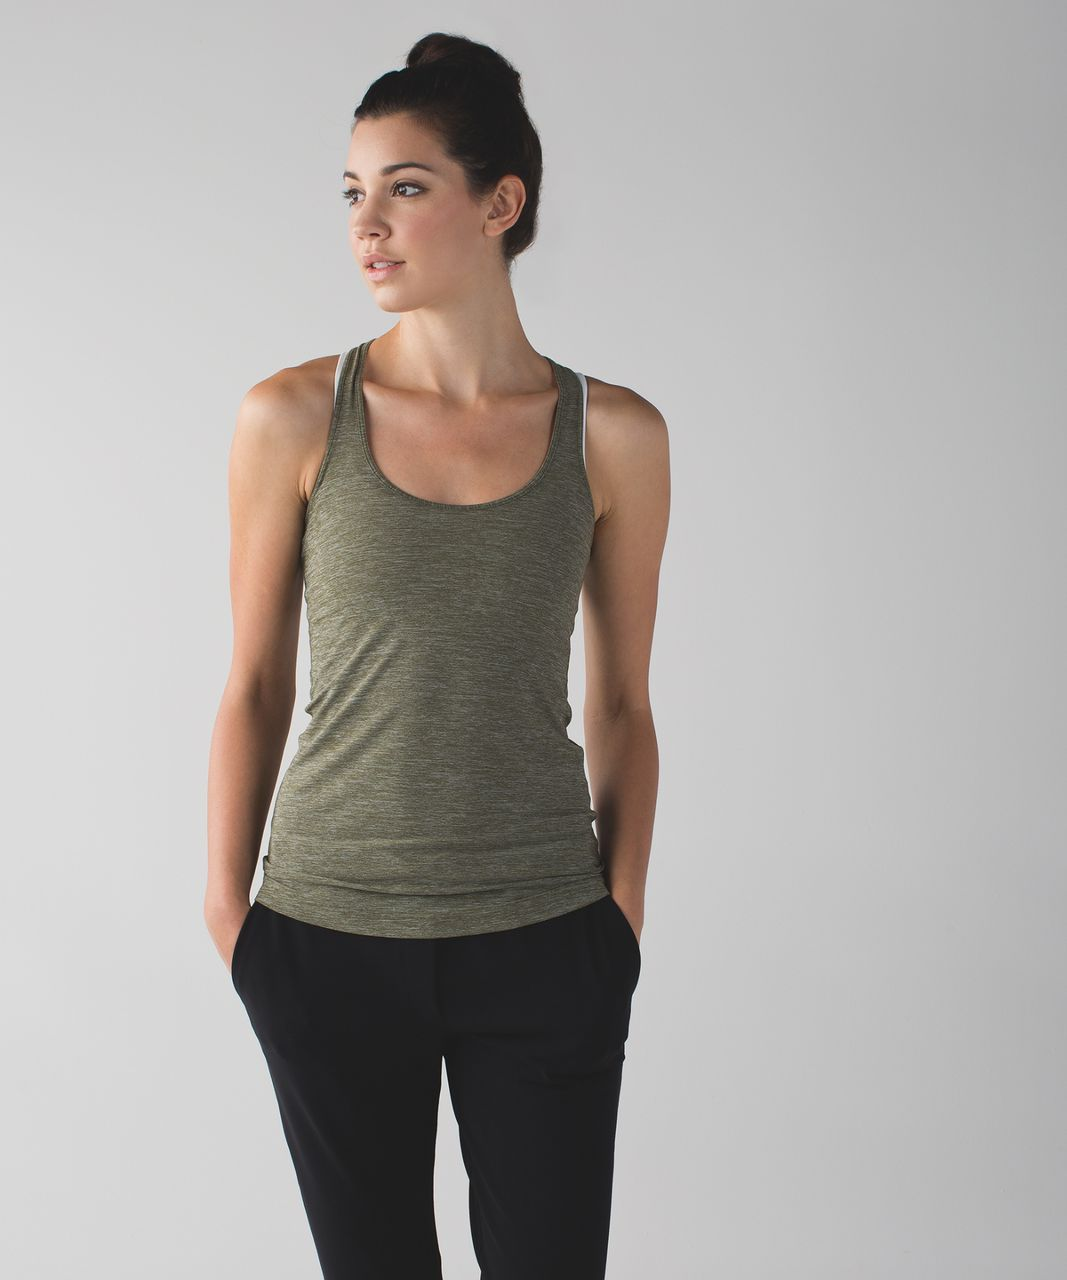 Lululemon Cool Racerback - Heathered Fatigue Green